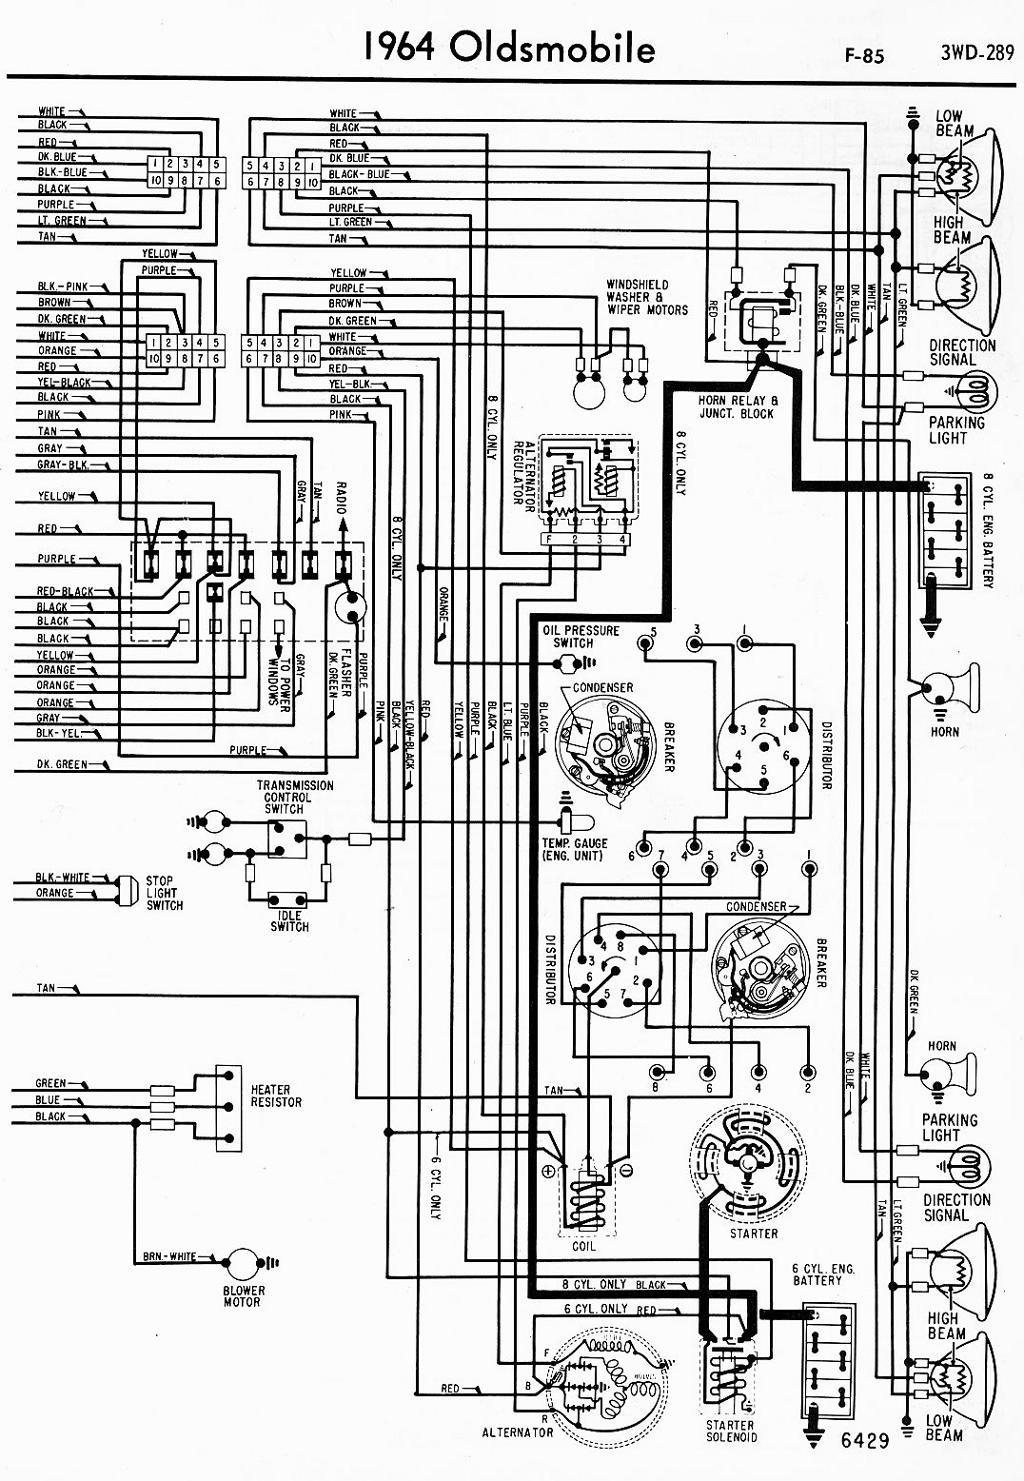 1965 olds 442 wiring diagram explained wiring diagrams 1971 oldsmobile  cutlass wiring-diagram 1967 oldsmobile